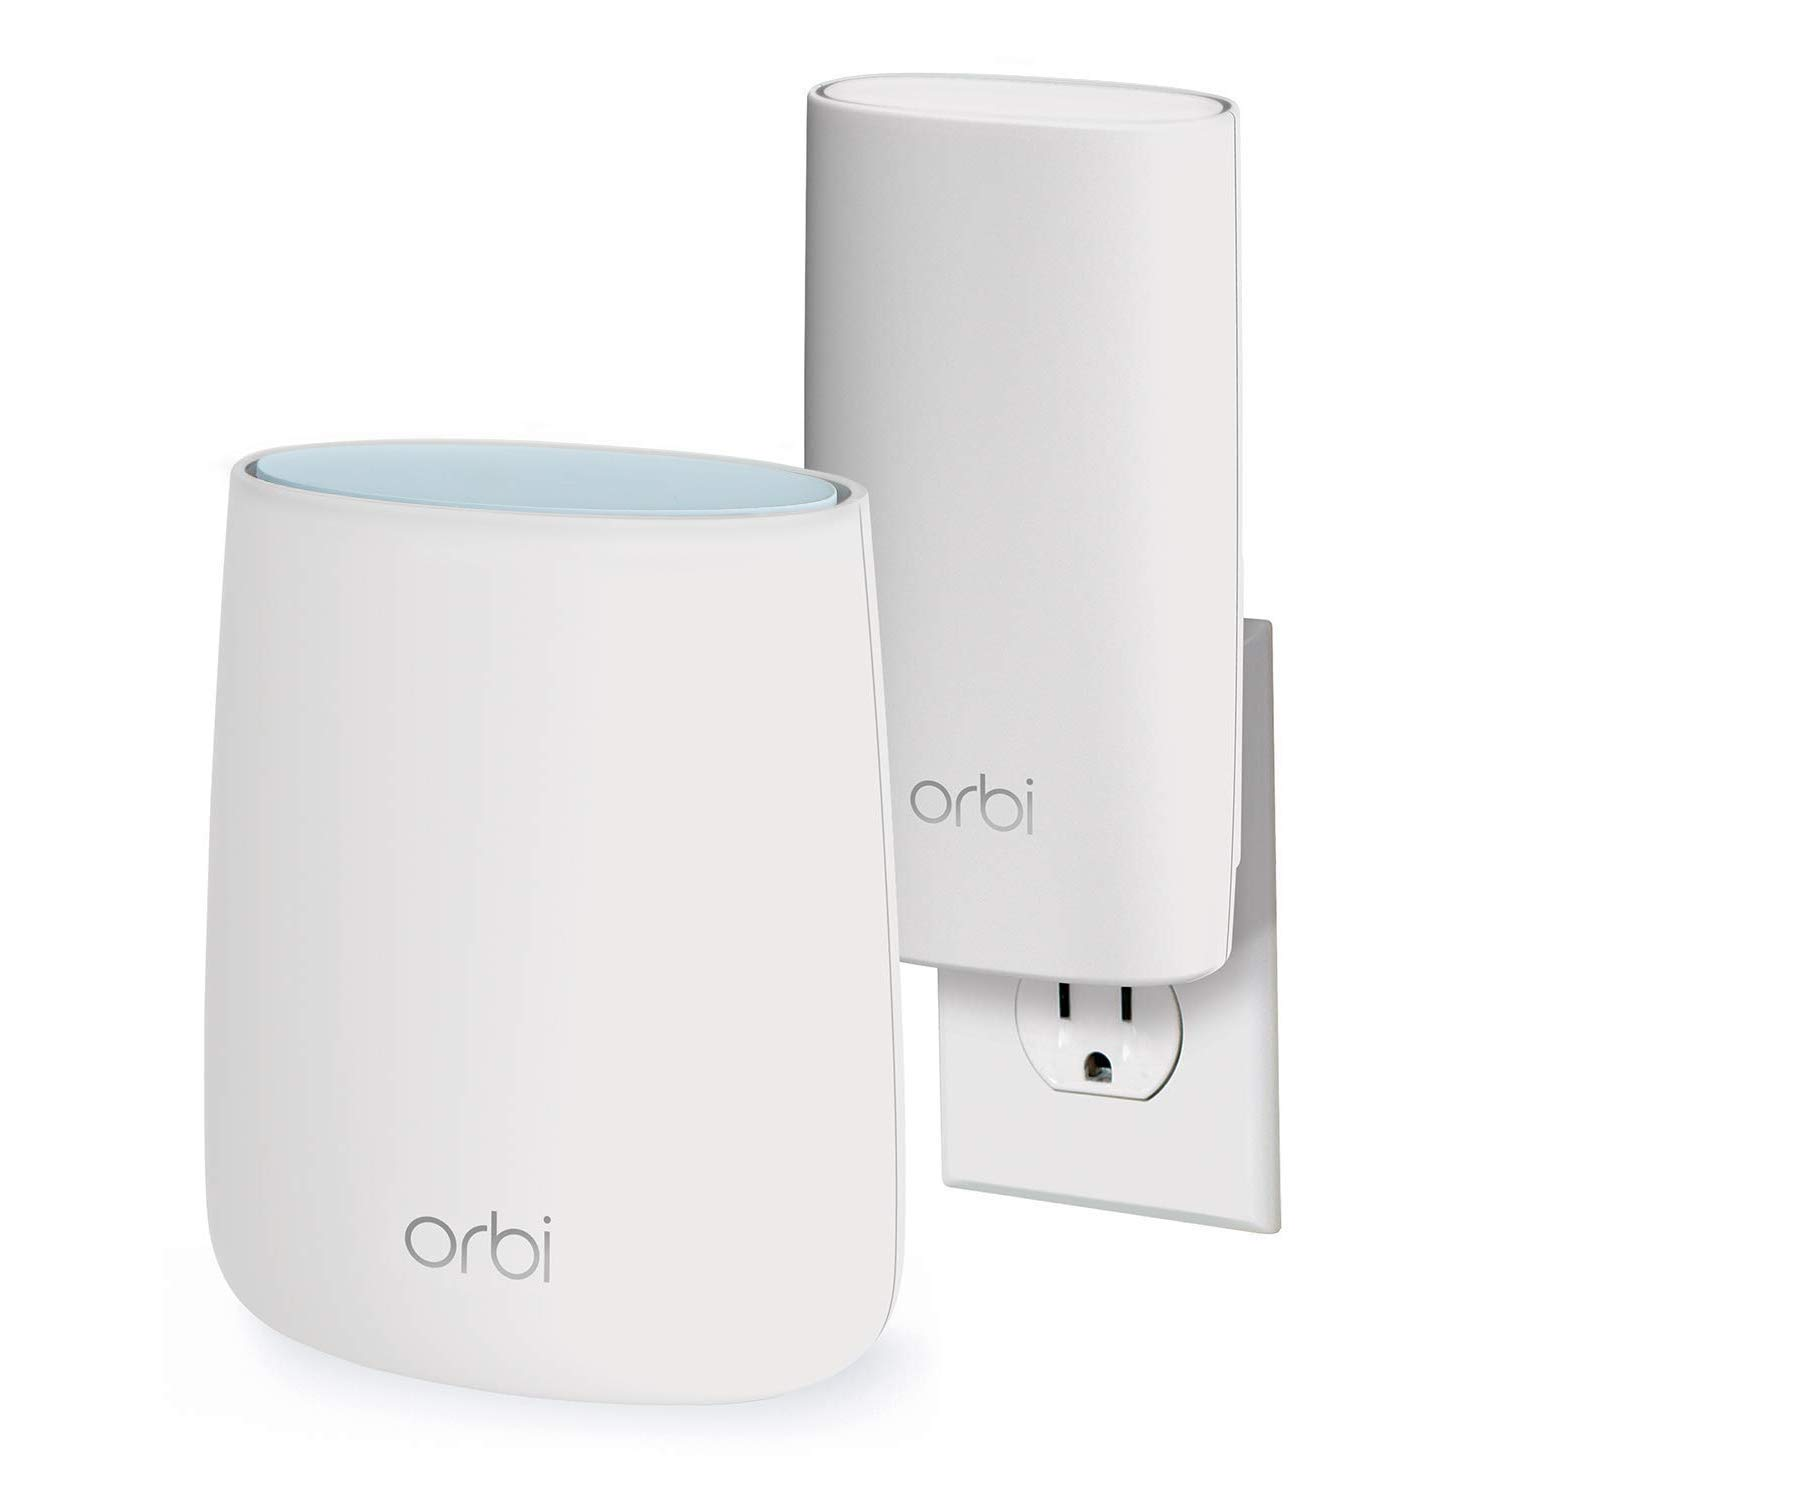 NETGEAR Orbi Compact Wall-Plug Whole Home Mesh WiFi System - WiFi Router and Wall-Plug Satellite Extender with speeds up to 2.2 Gbps Over 3,500 sq. feet, AC2200 (RBK20W) by NETGEAR